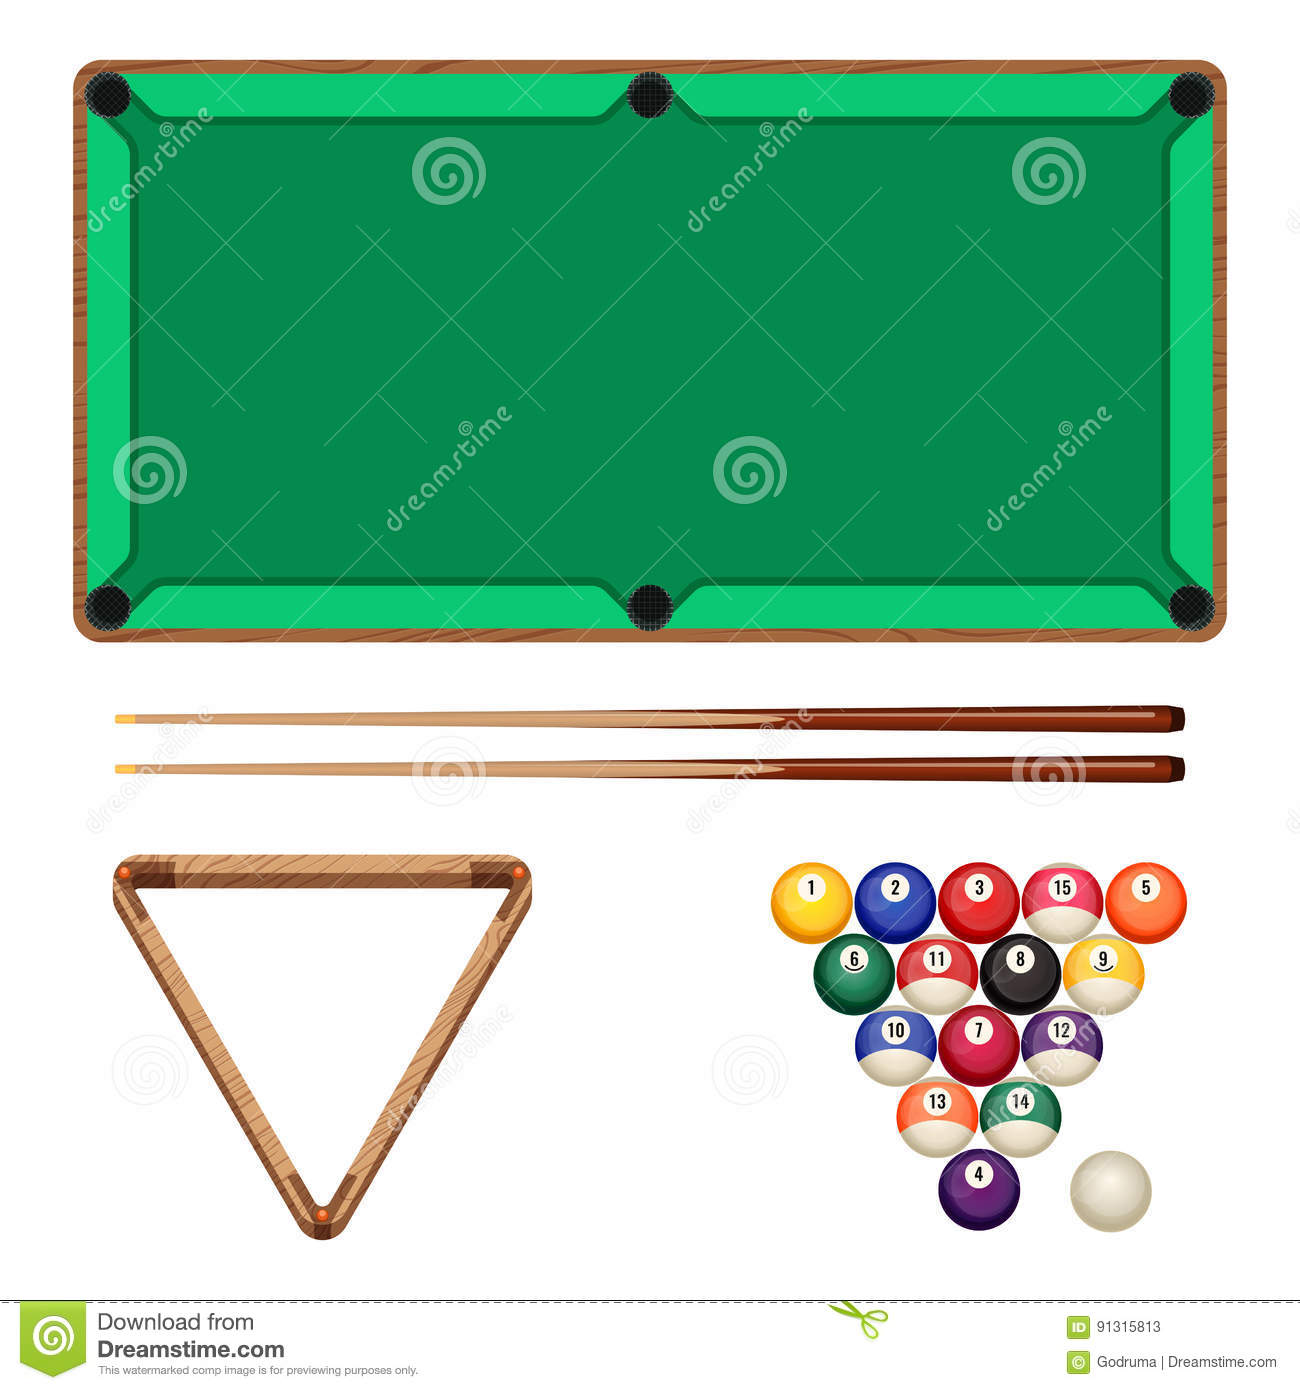 snooker and pool gaming elements isolated on white billiard table stock vector illustration. Black Bedroom Furniture Sets. Home Design Ideas